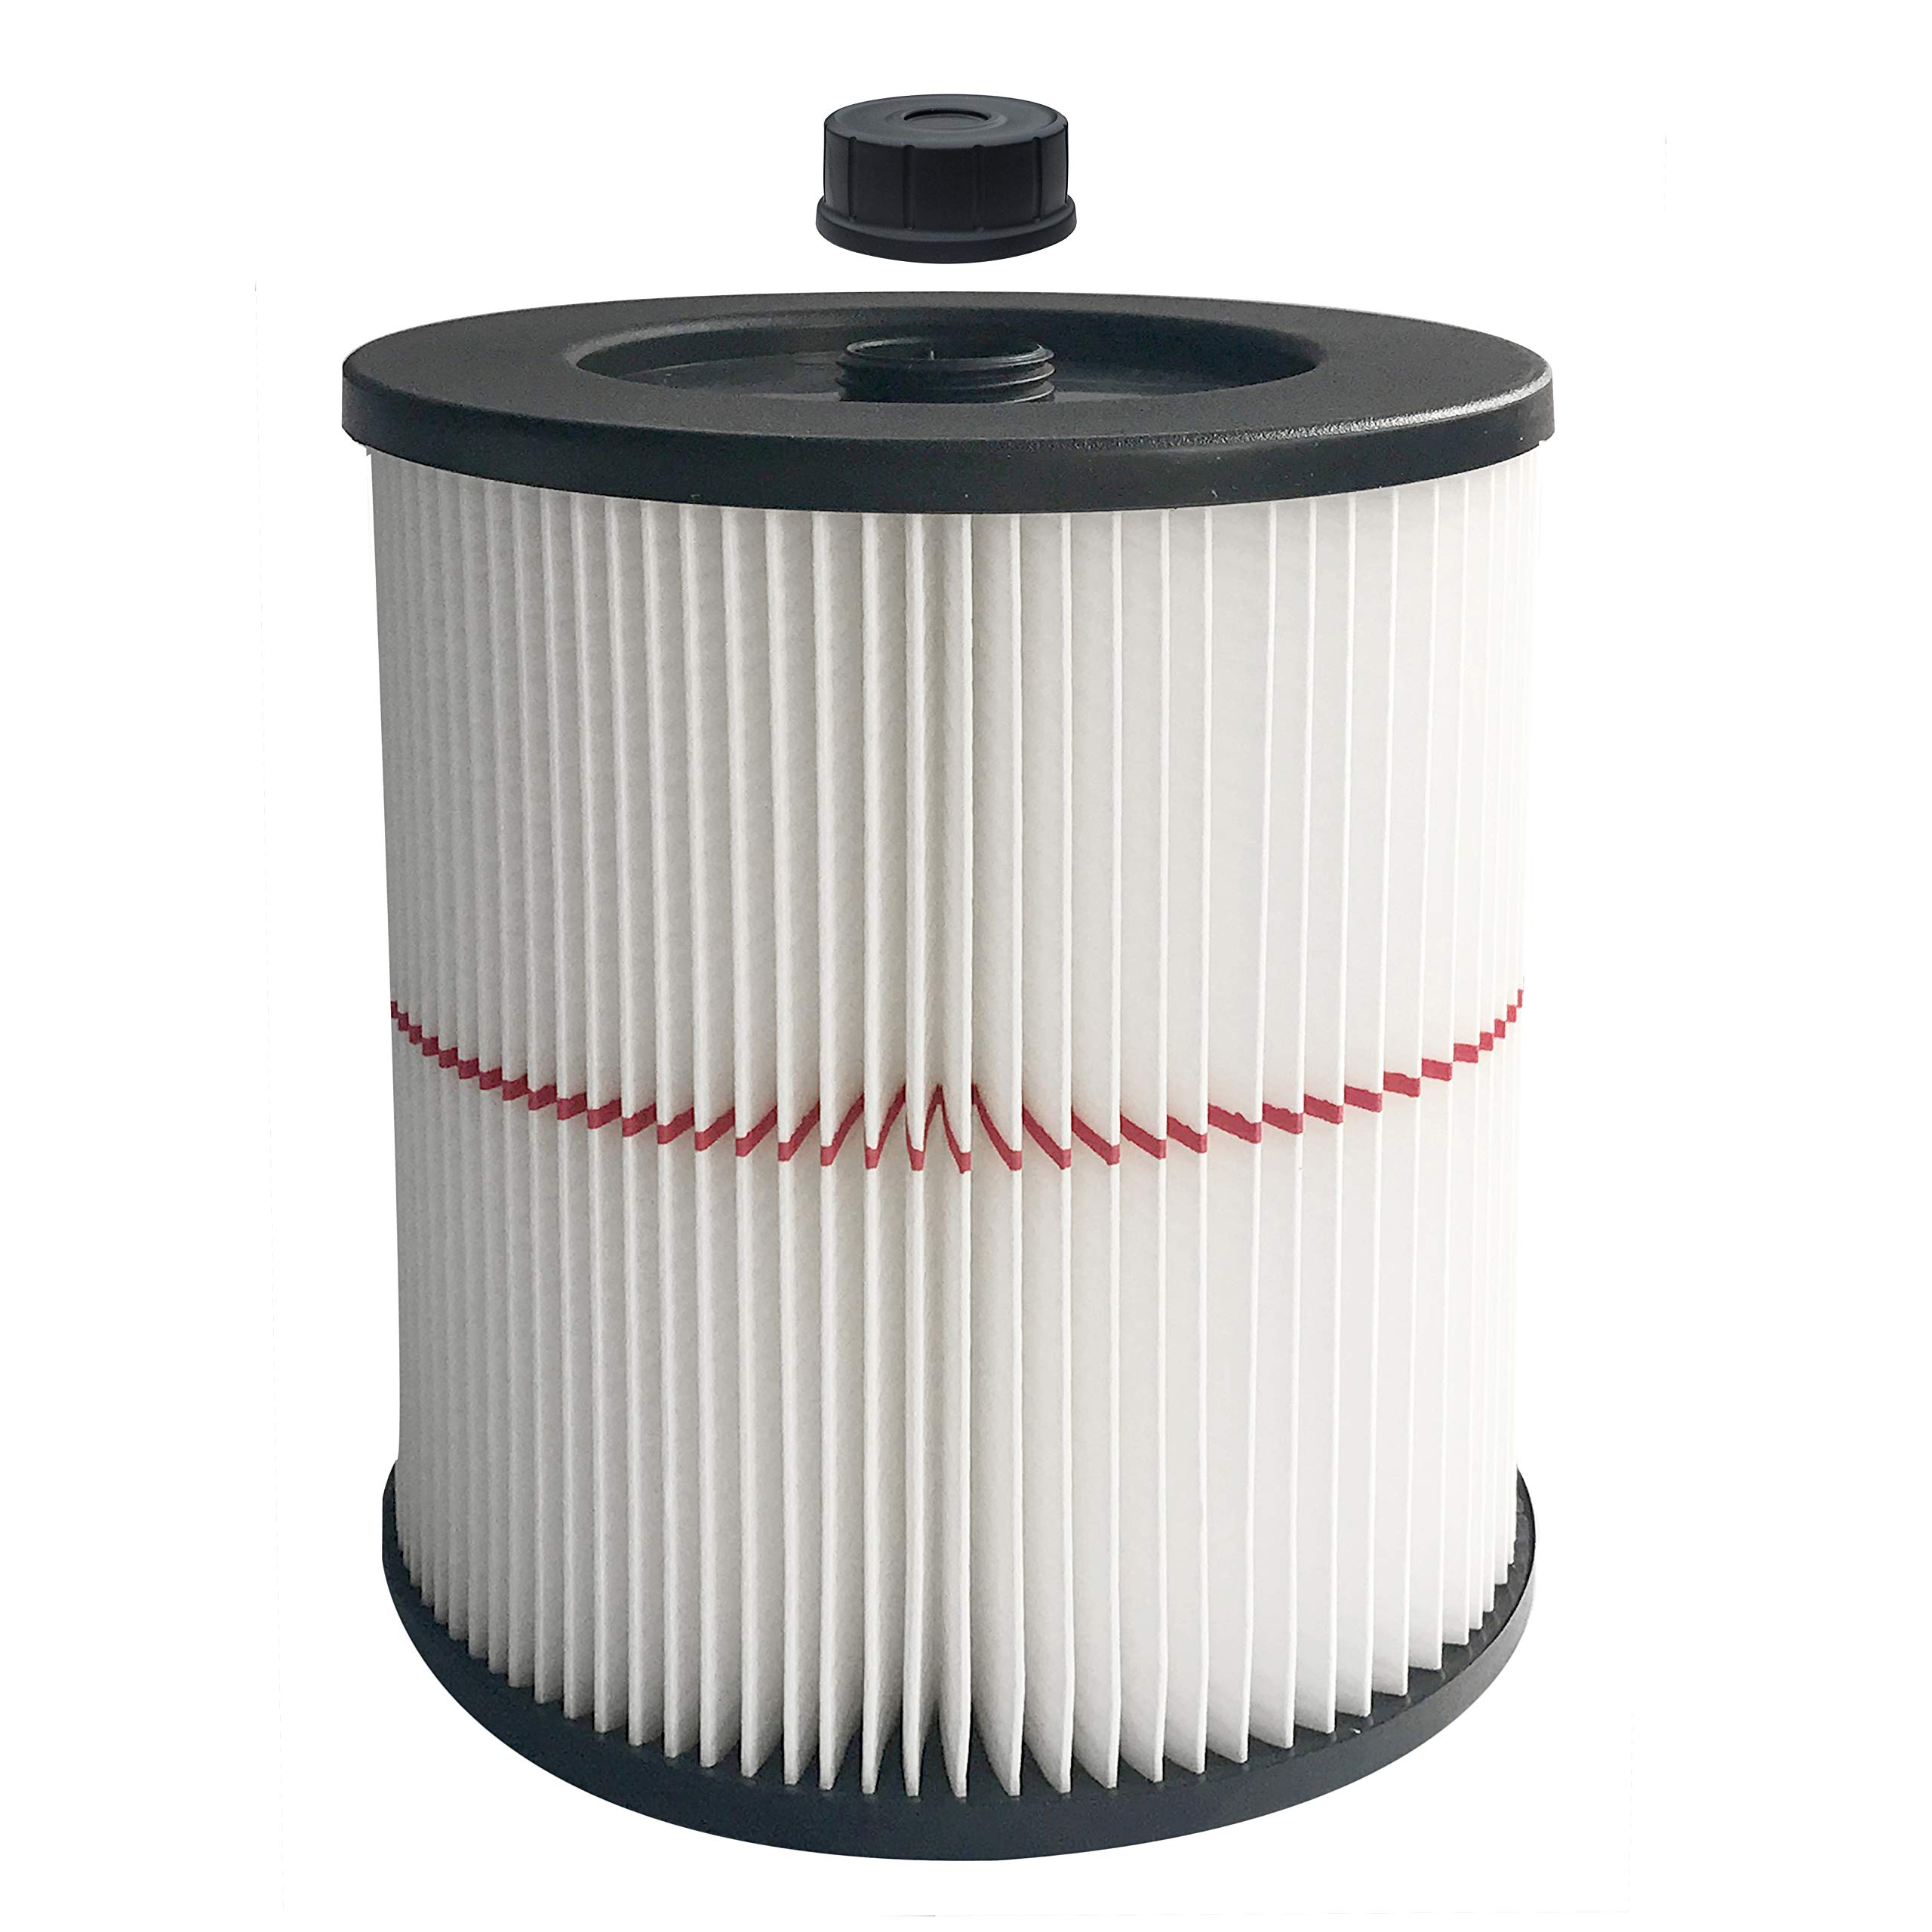 Cartridge Replacement Filter fit Shop Vac Craftsman 9-17816 Wet/Dry Vacuum Cleaner for 5 Gallon & Larger Vac by Aliddle